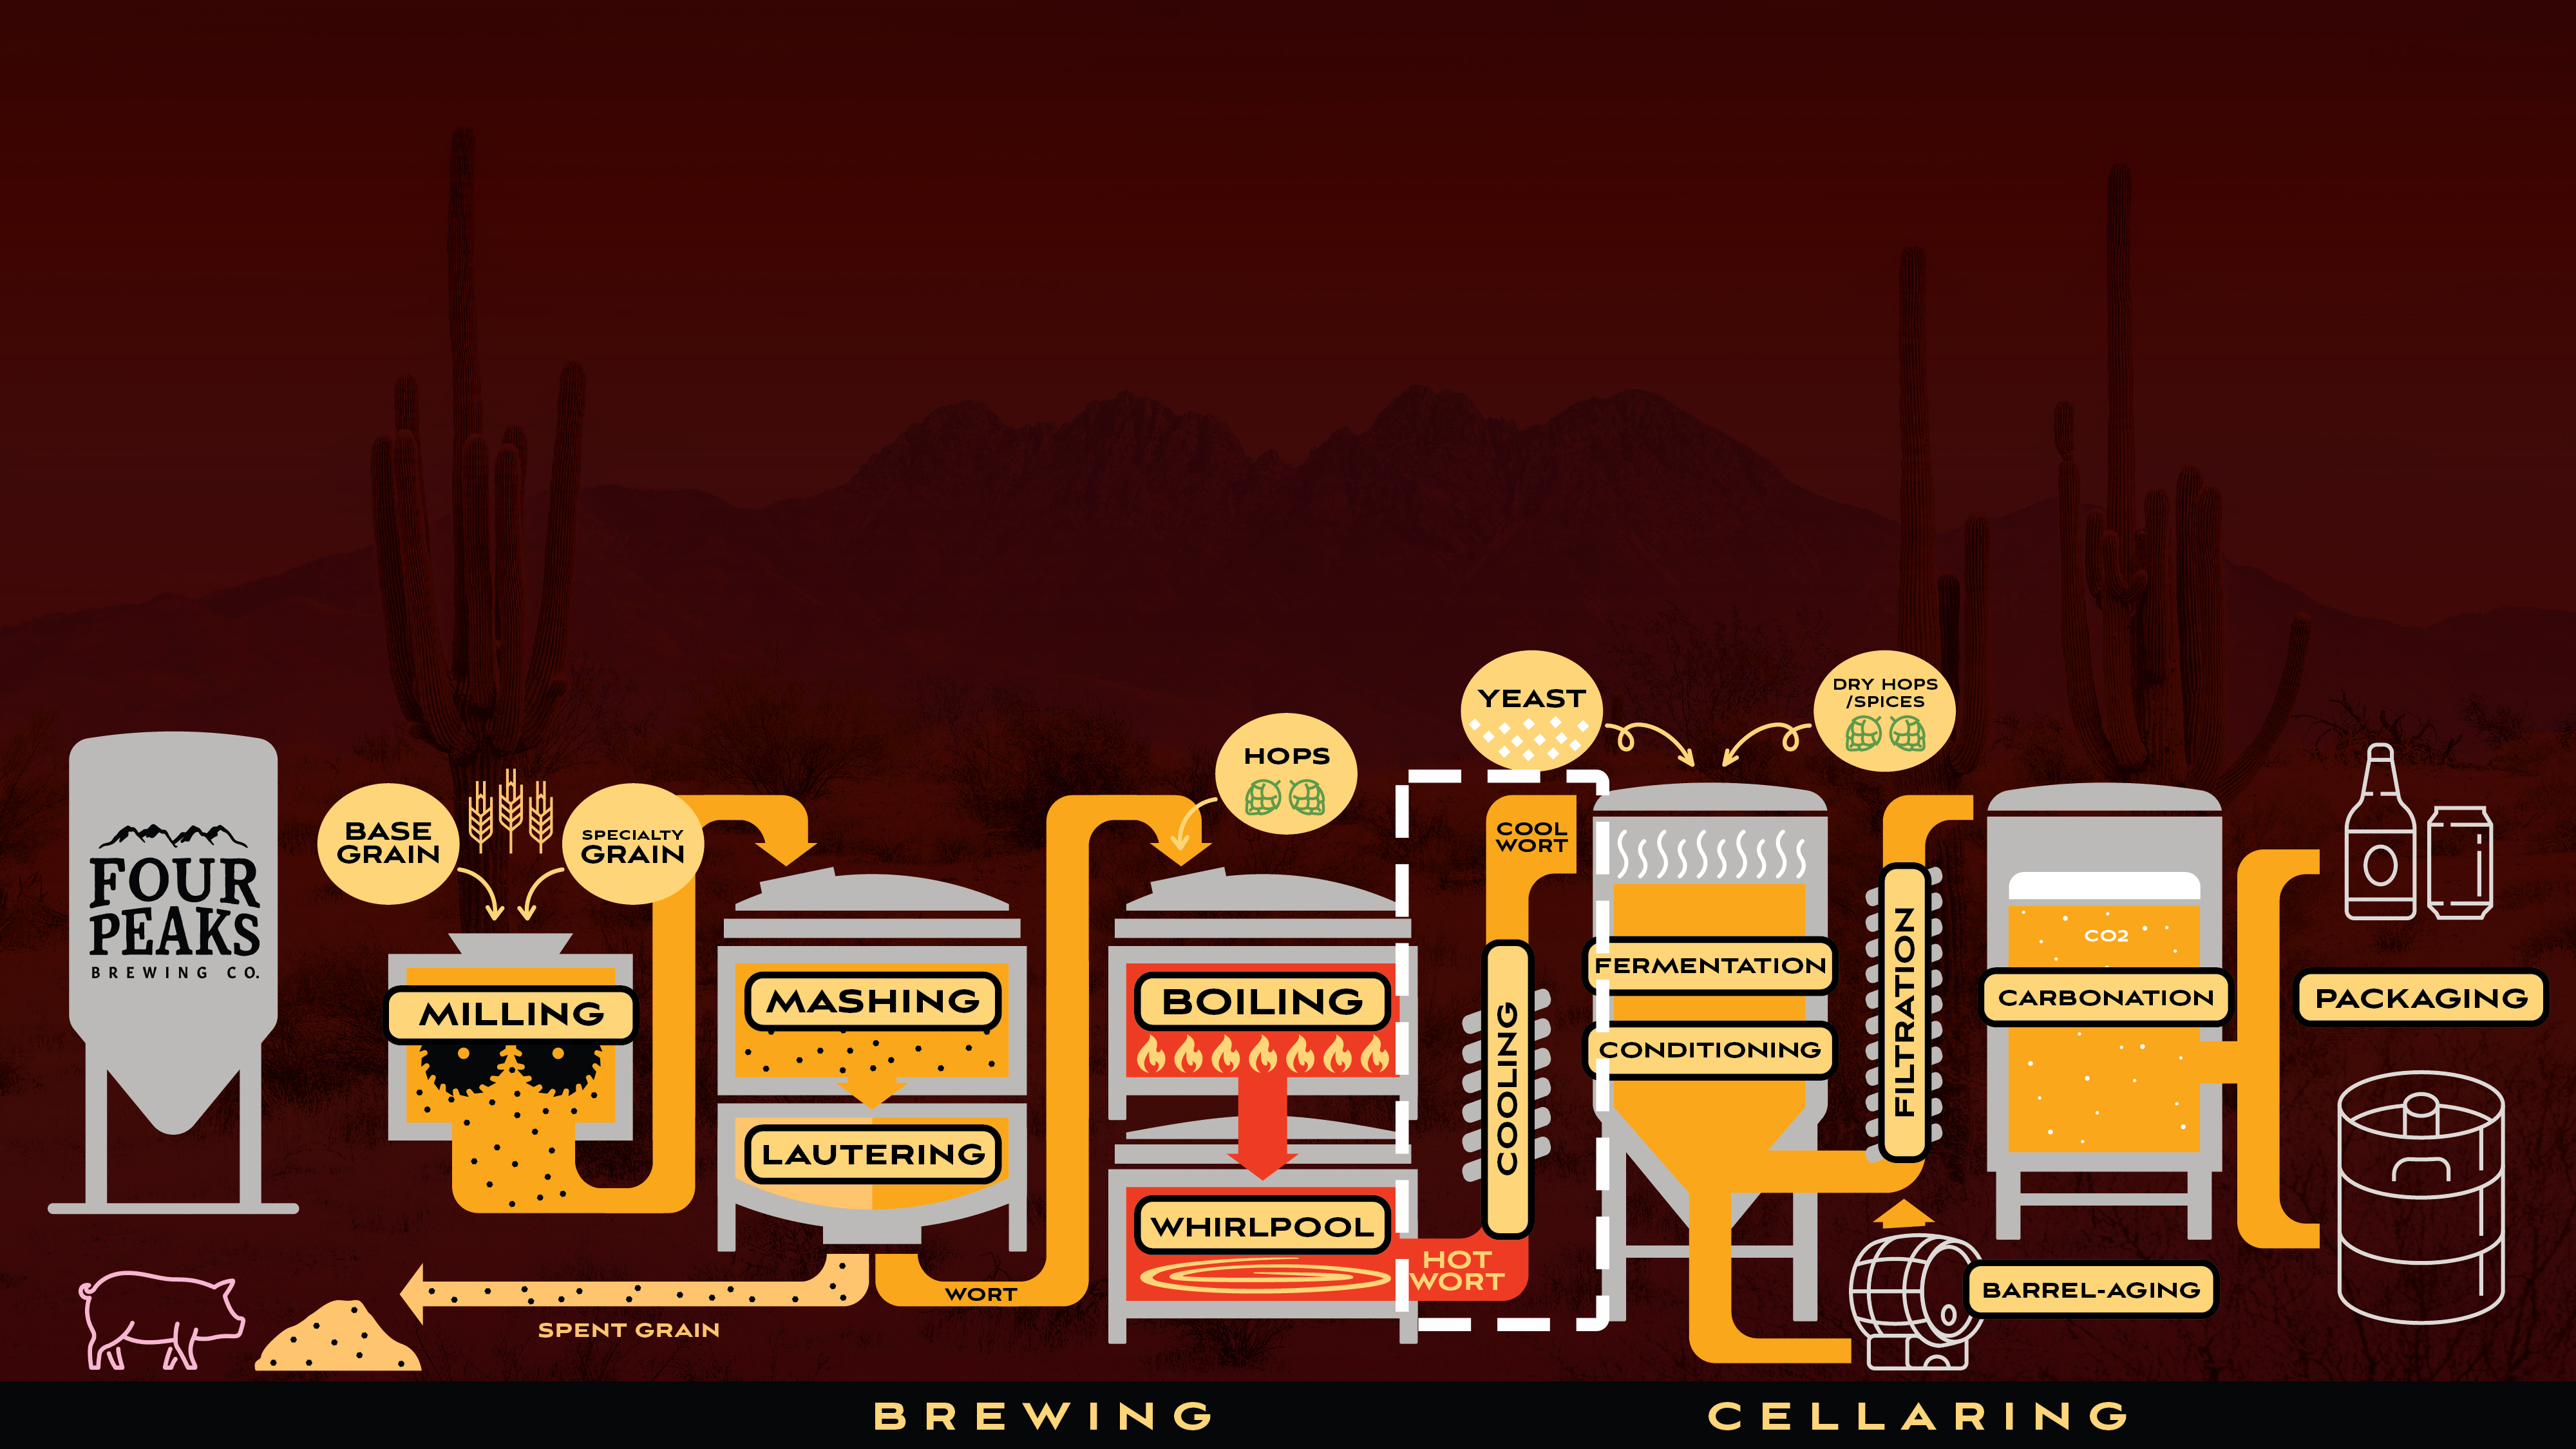 Brewing Process - Cooling